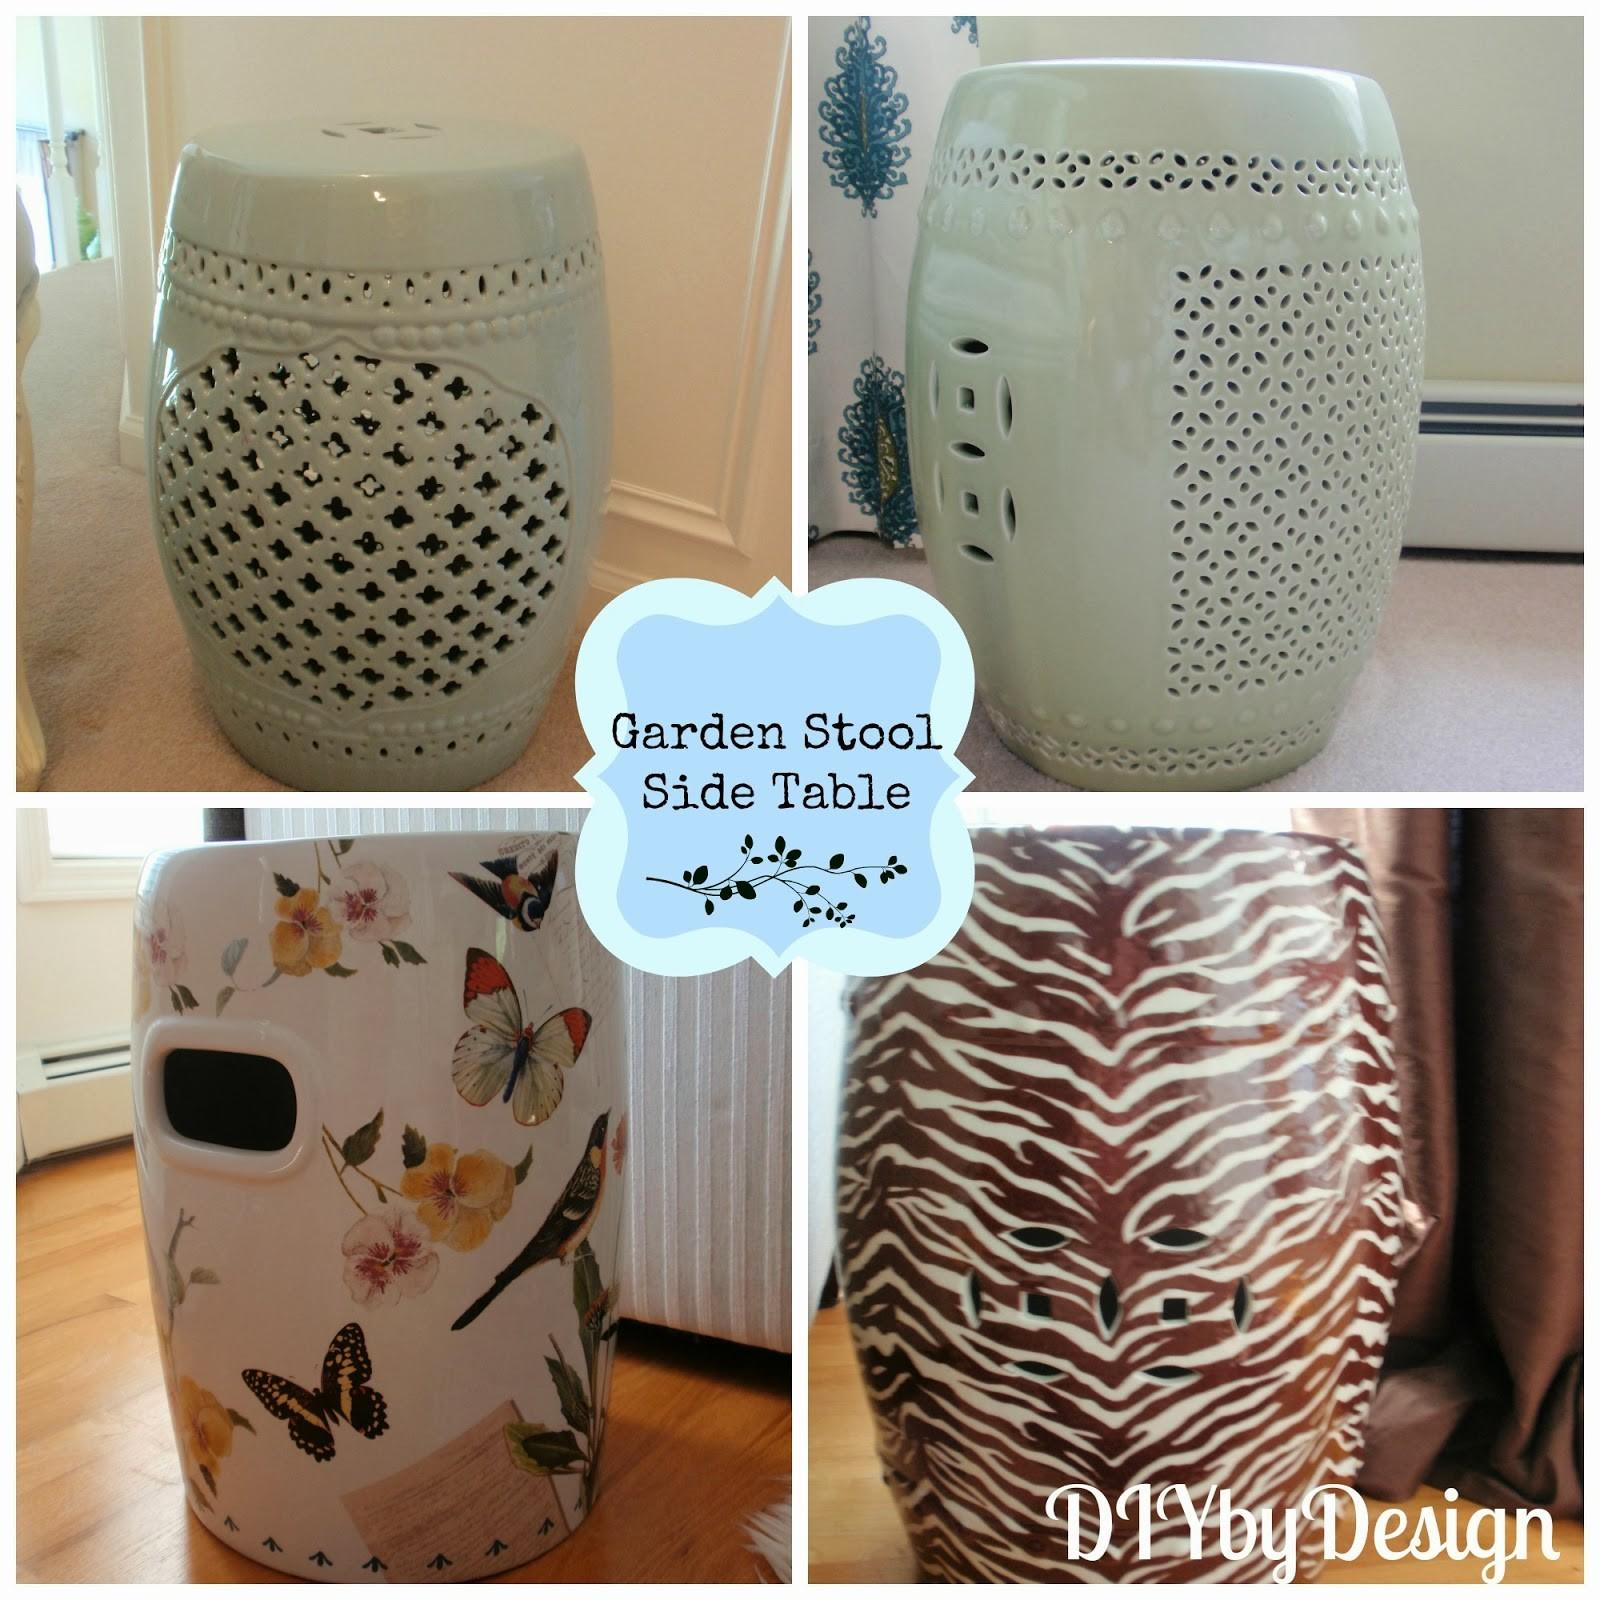 Diy Design Using Garden Stools Home Decor